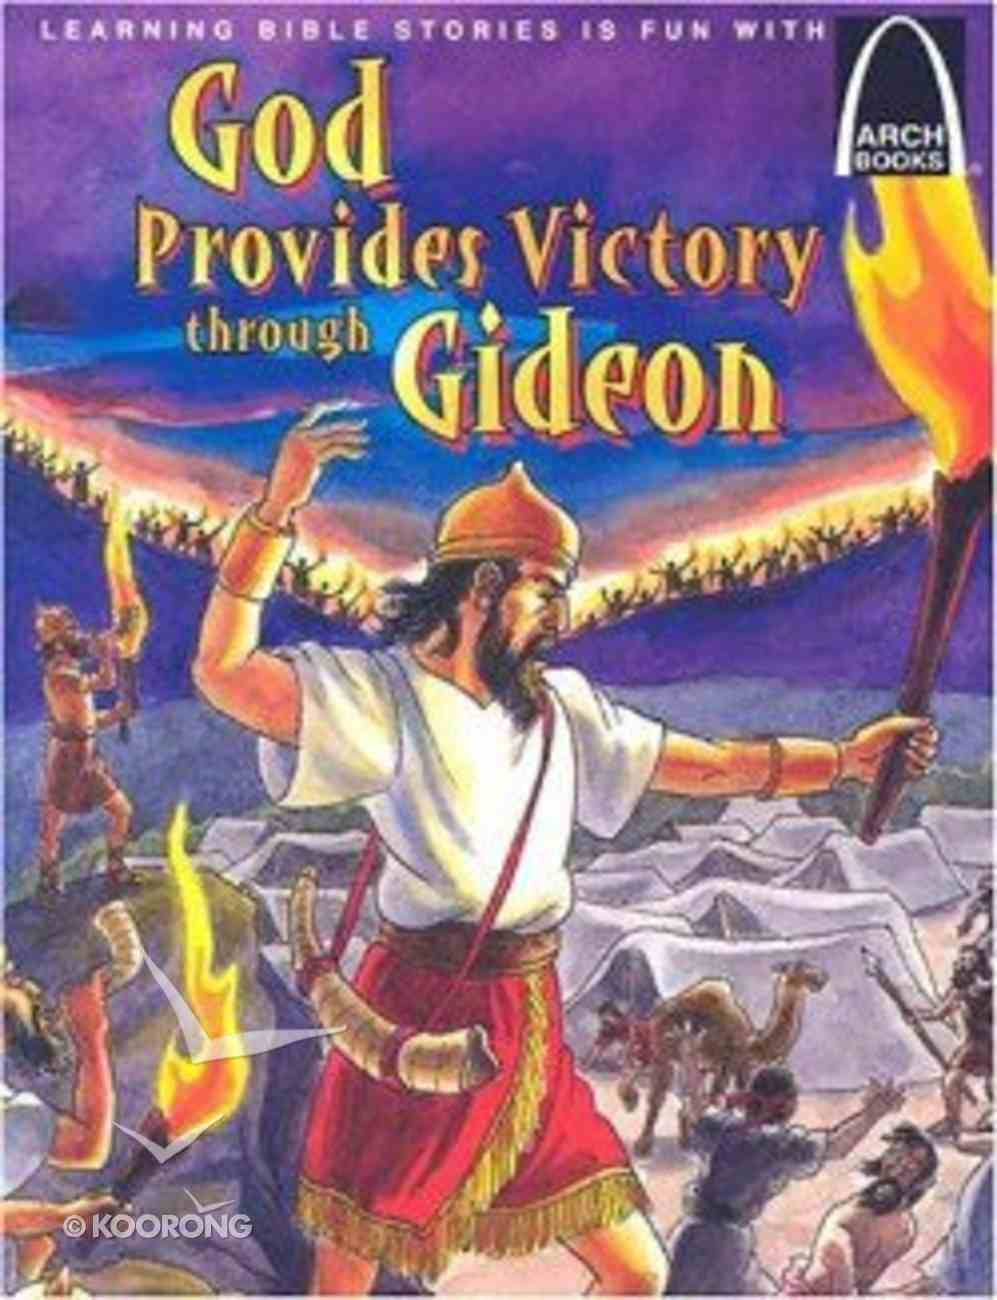 God Provides Victory Through Gideon (Arch Books Series) Paperback